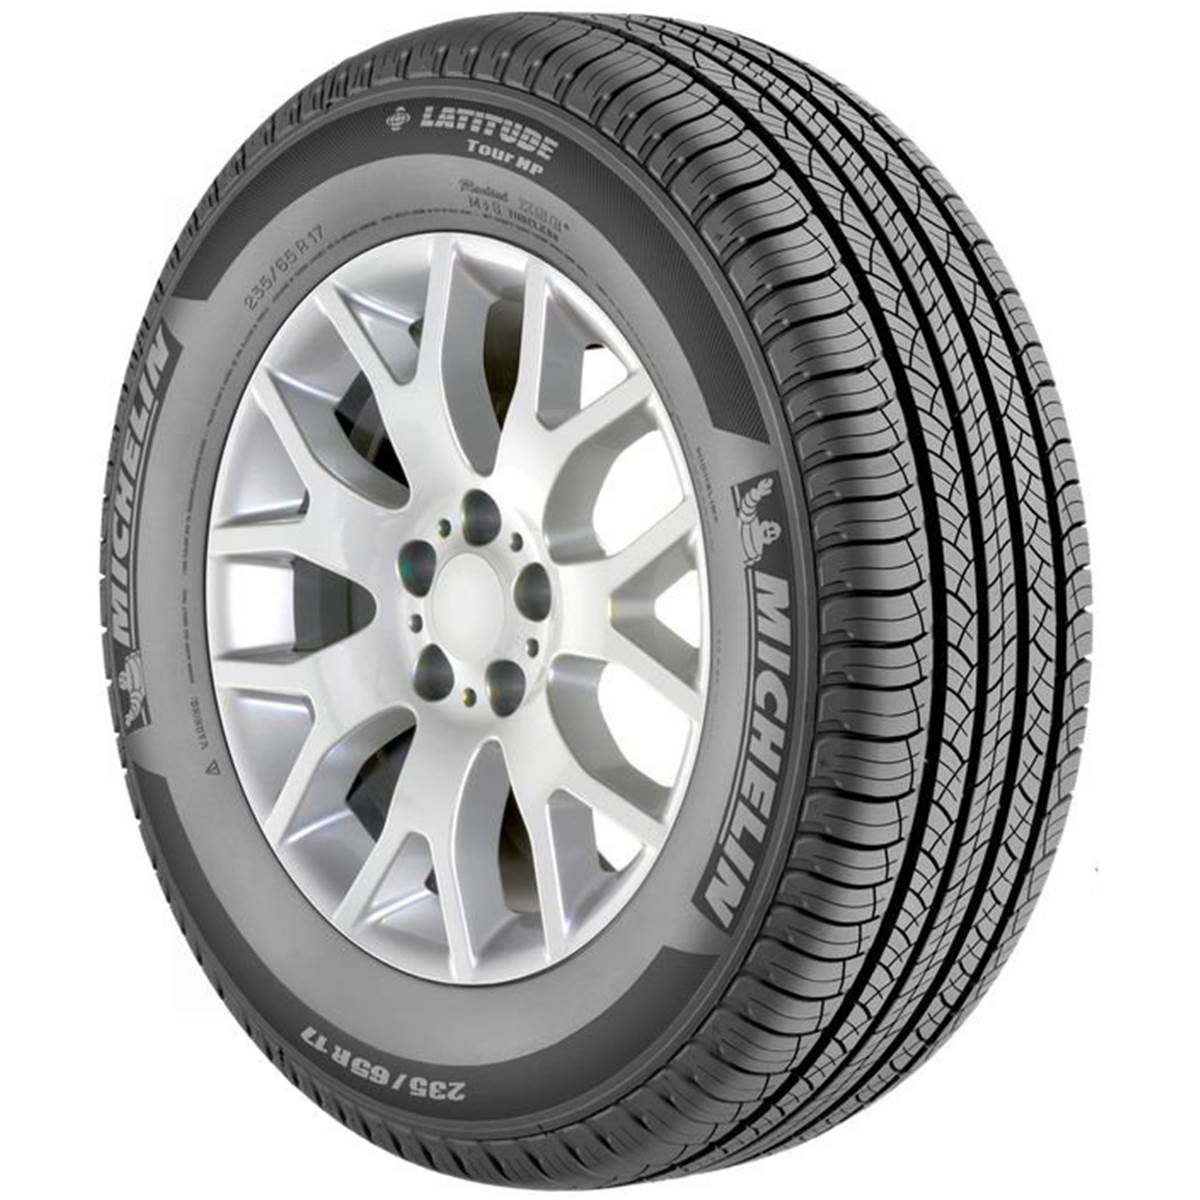 Pneu 4X4 MICHELIN 235/65R18 110V Latitude Tour Hp XL